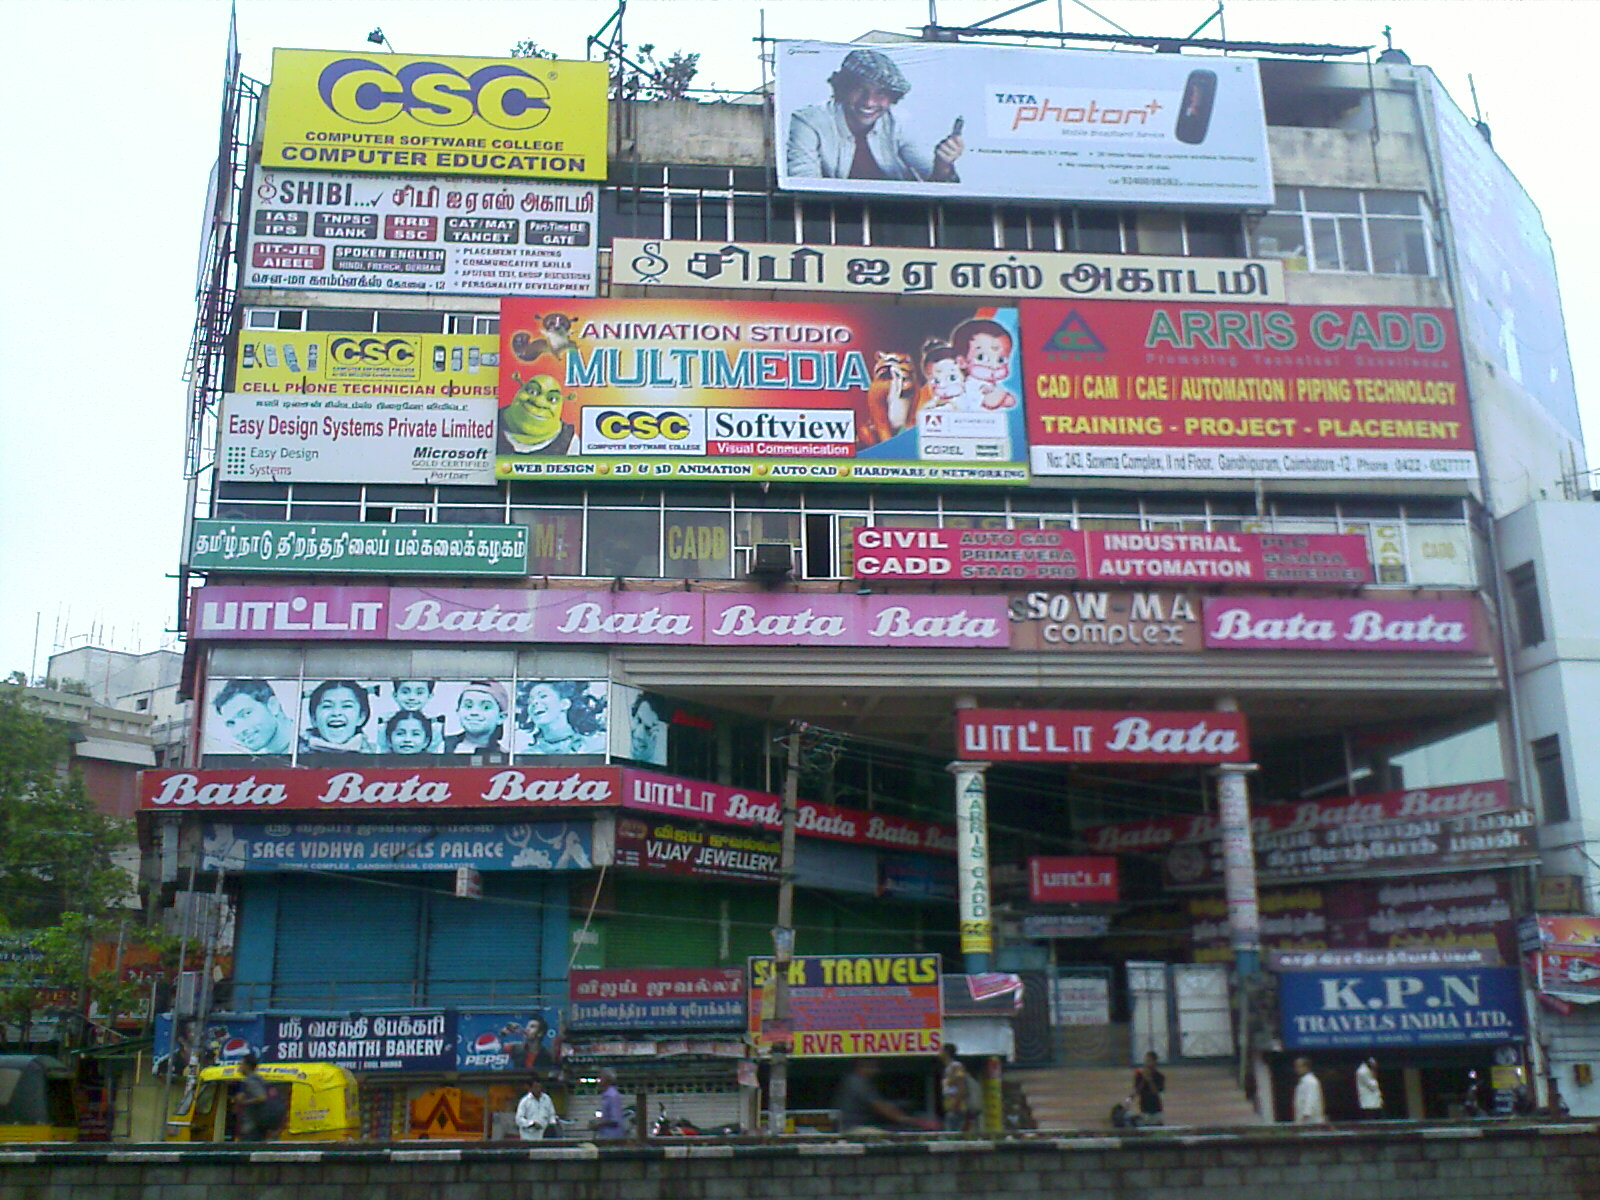 Shopping complex or advertisement complex?